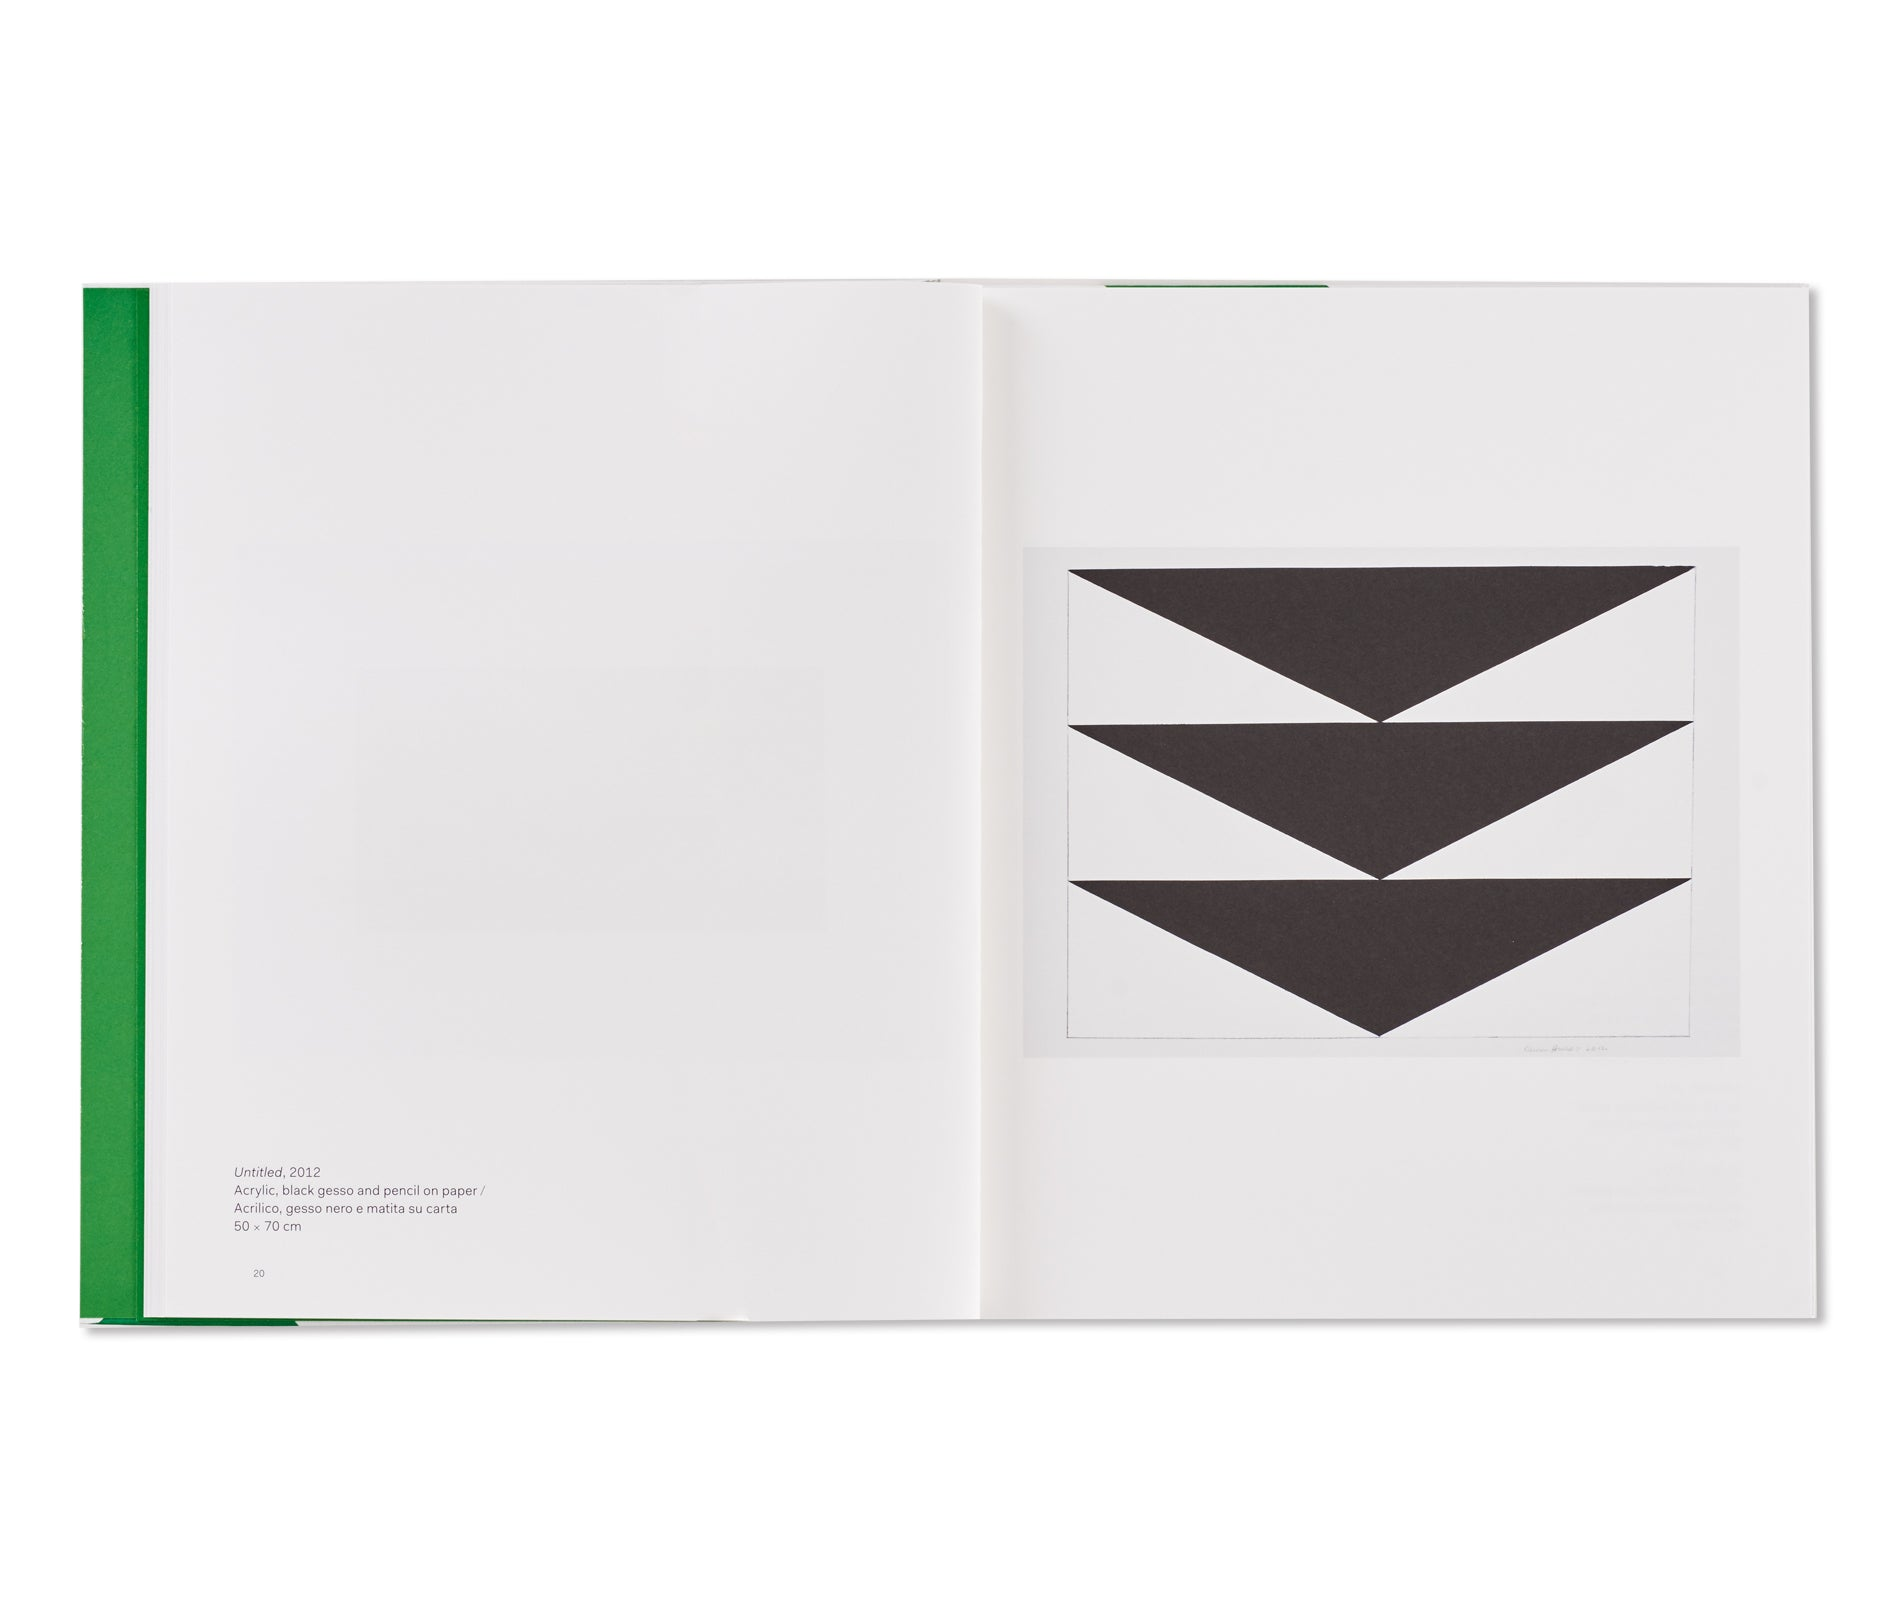 WORKS ON PAPER / OPERE SU CARTA 2010-2012 by Carmen Herrera